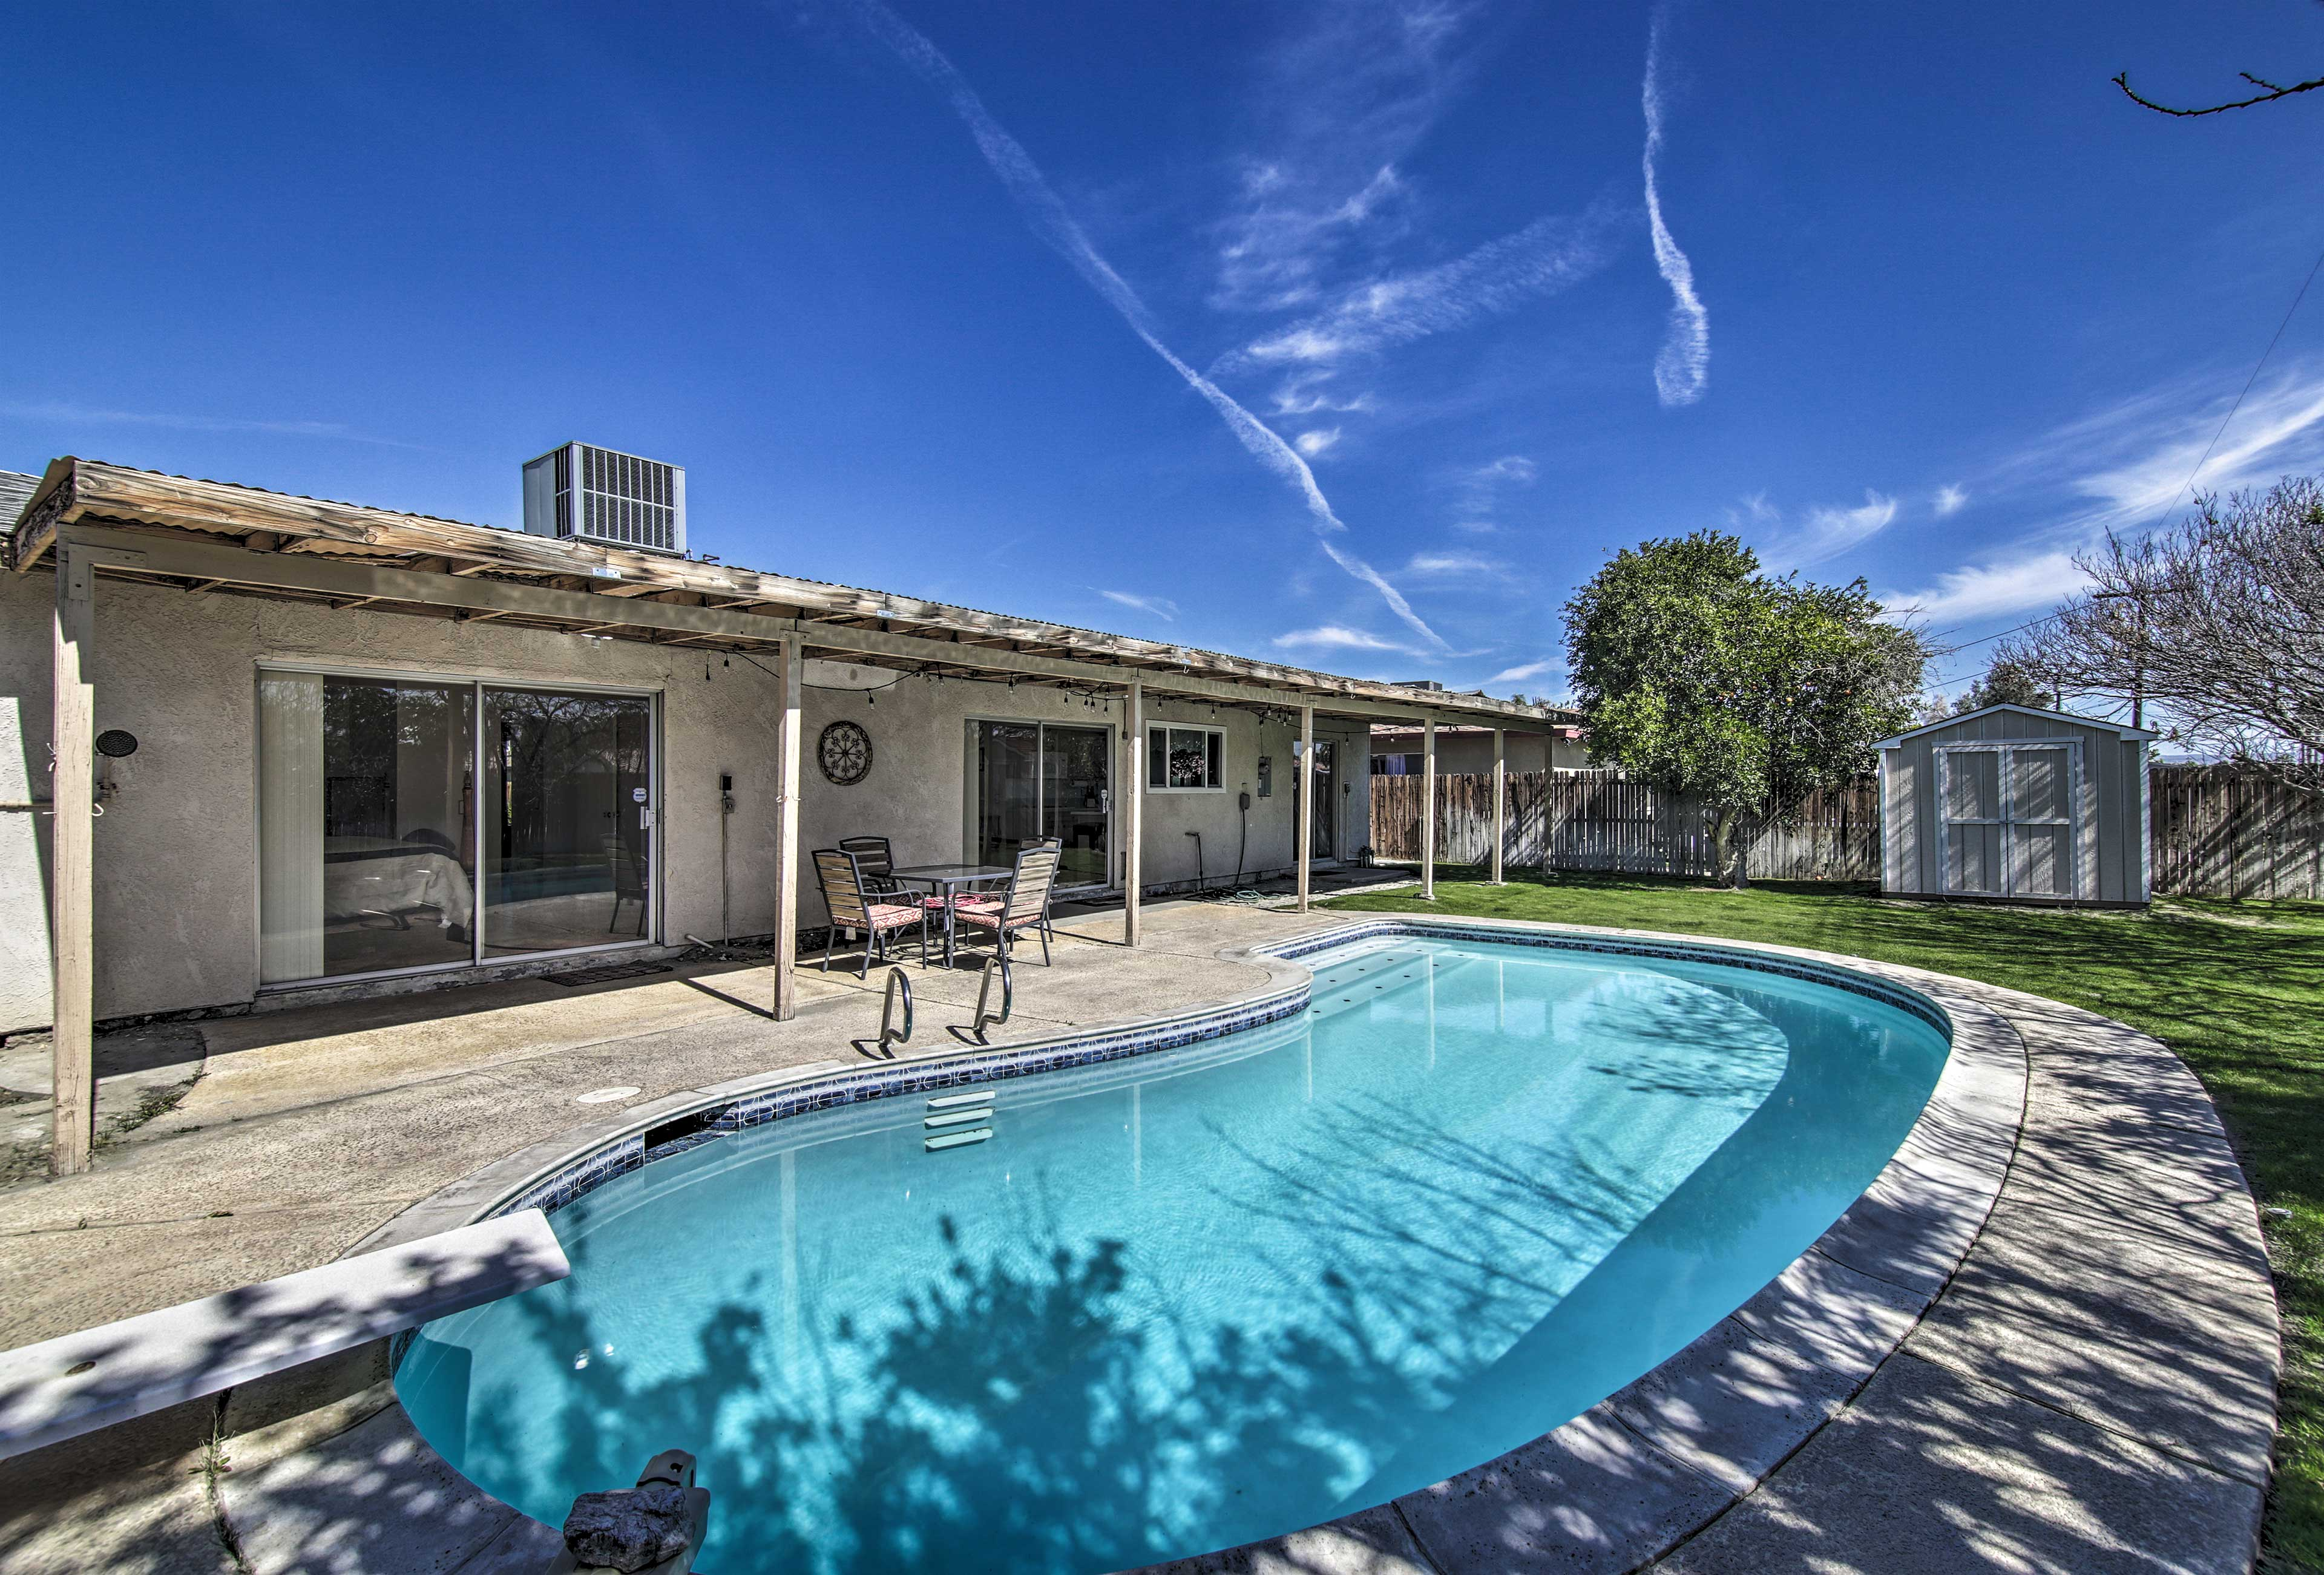 Jump off the diving board and take a dip in the private pool!